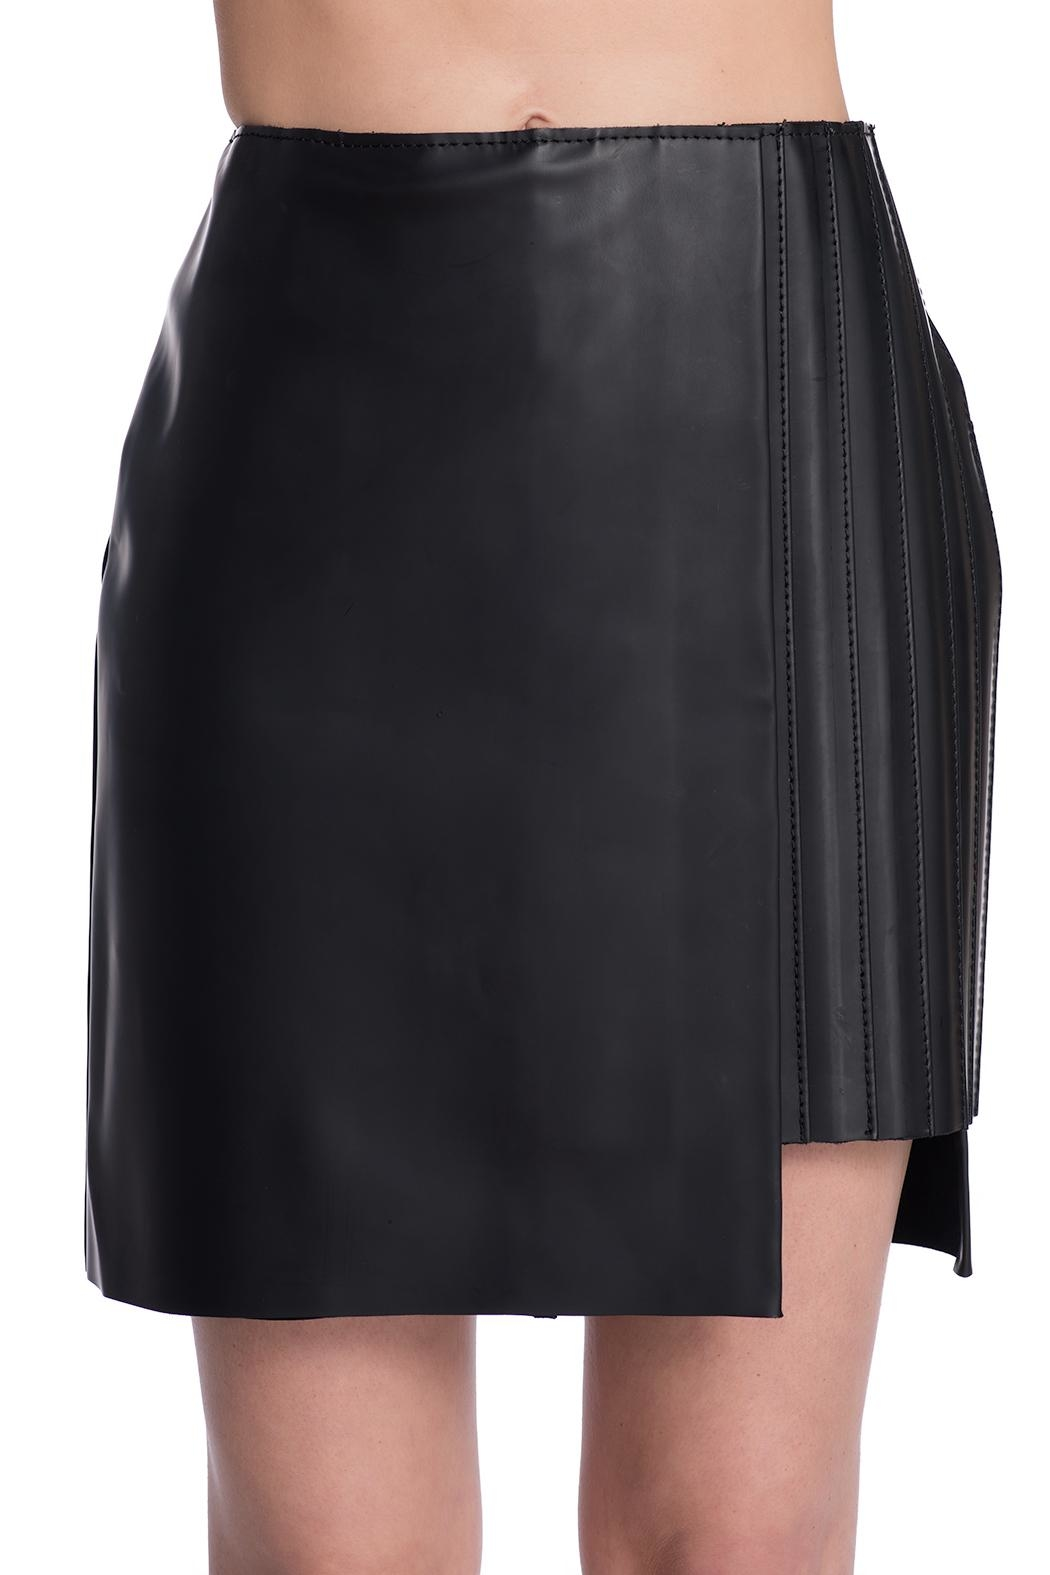 Charlie May Rubberized Leather Skirt - Main Image